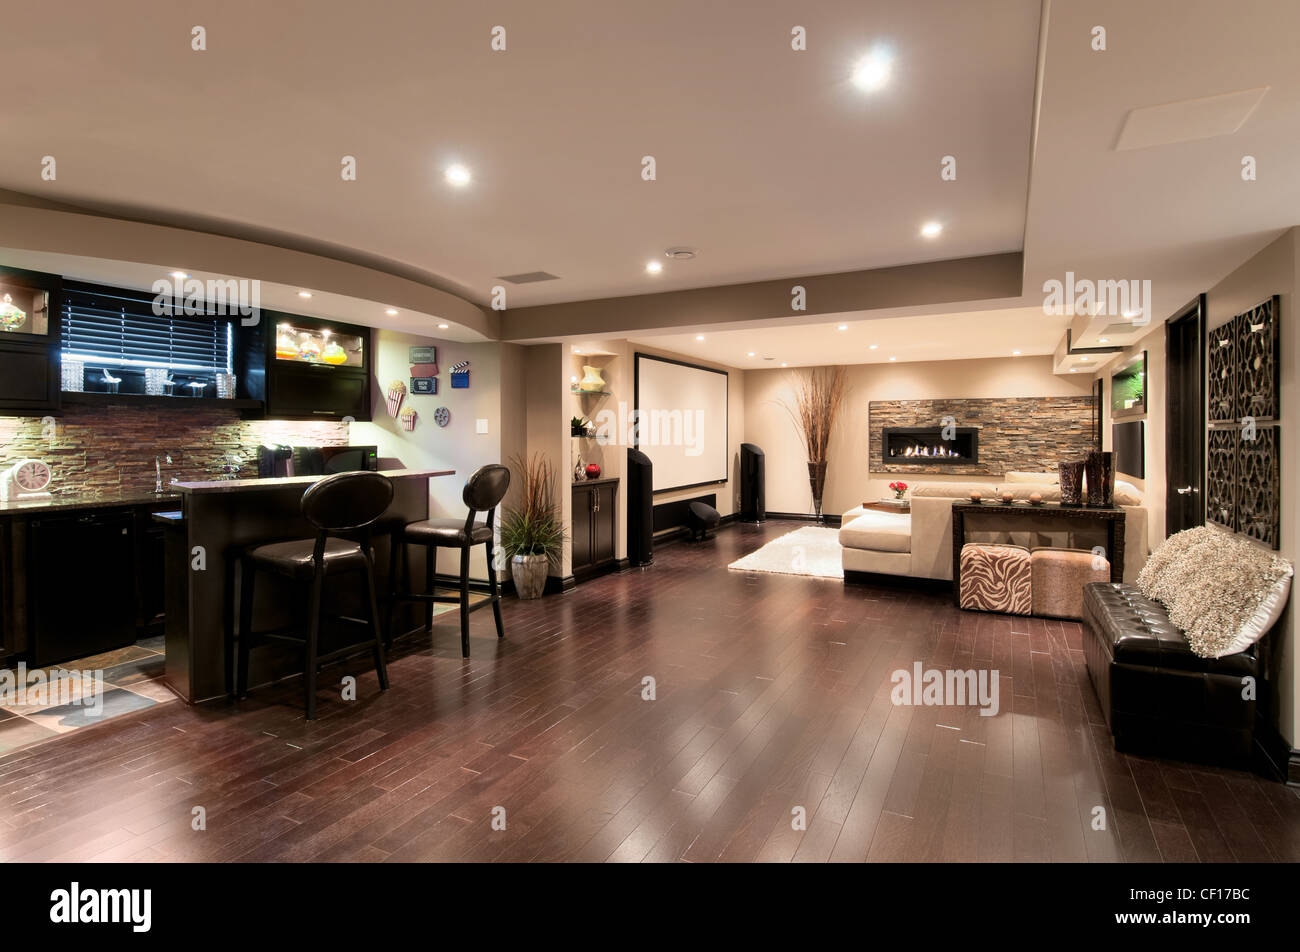 Modern Kitchen Lighting Ideas Basement In Luxury Residential Home With Bar And Home